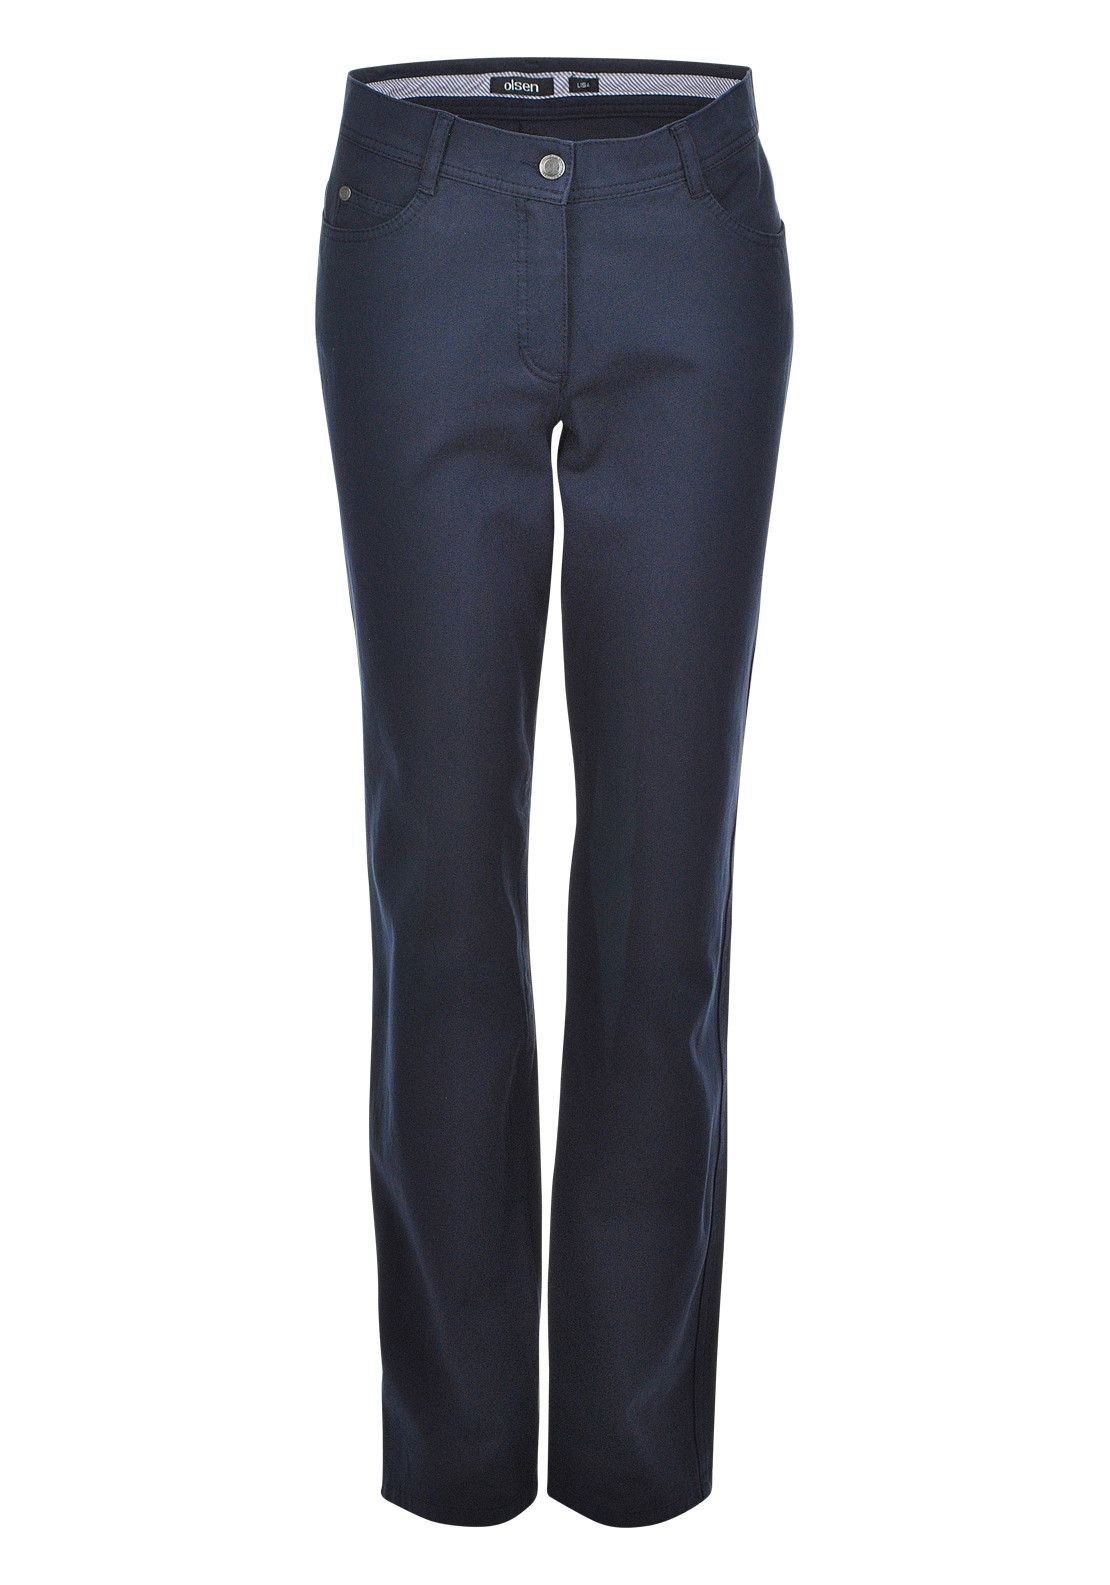 Olsen Lisa Straight Leg Jeans, Dark Denim